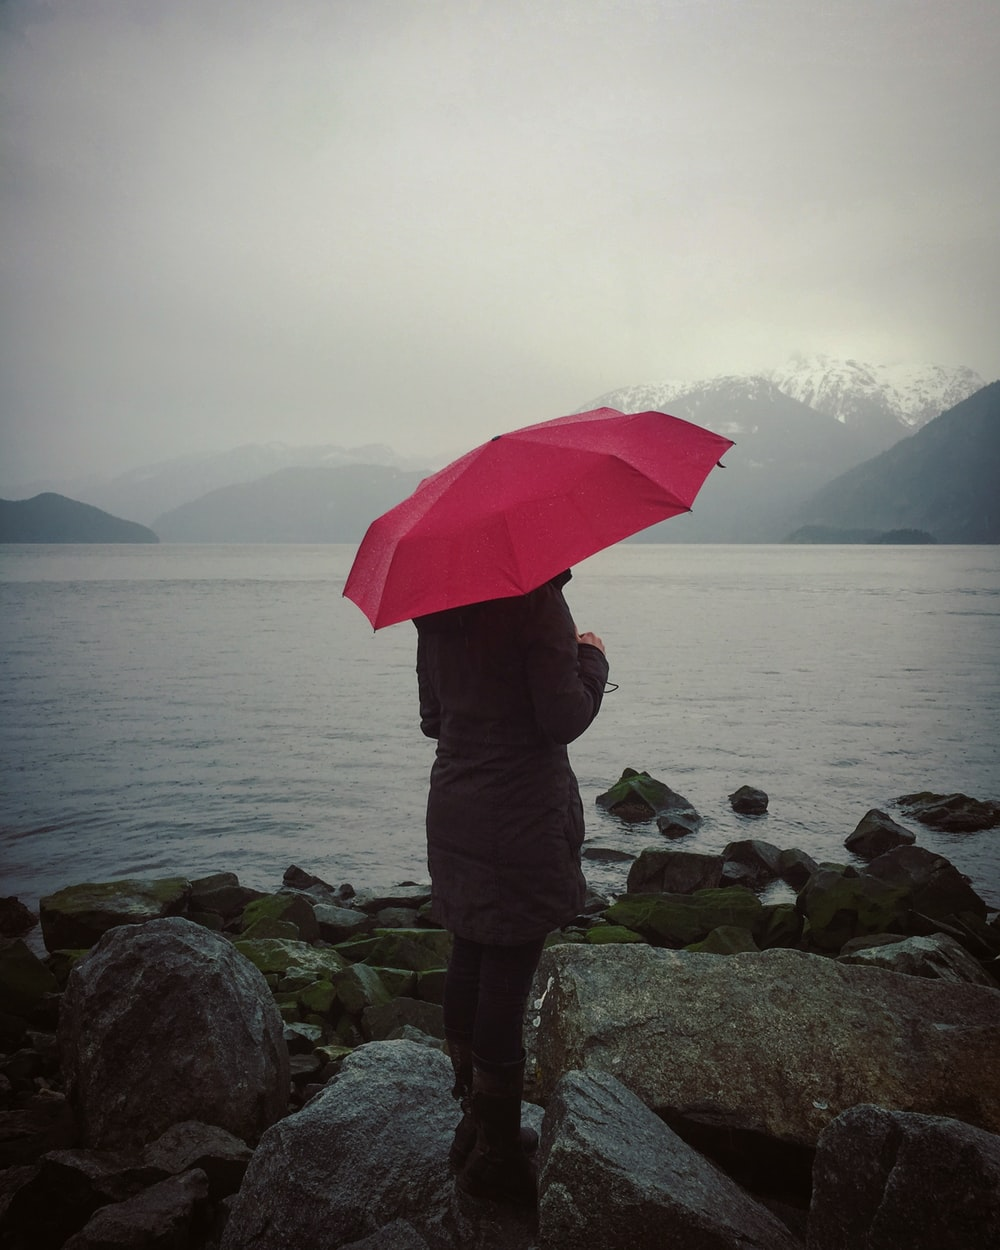 woman holding red umbrella standing on rocks